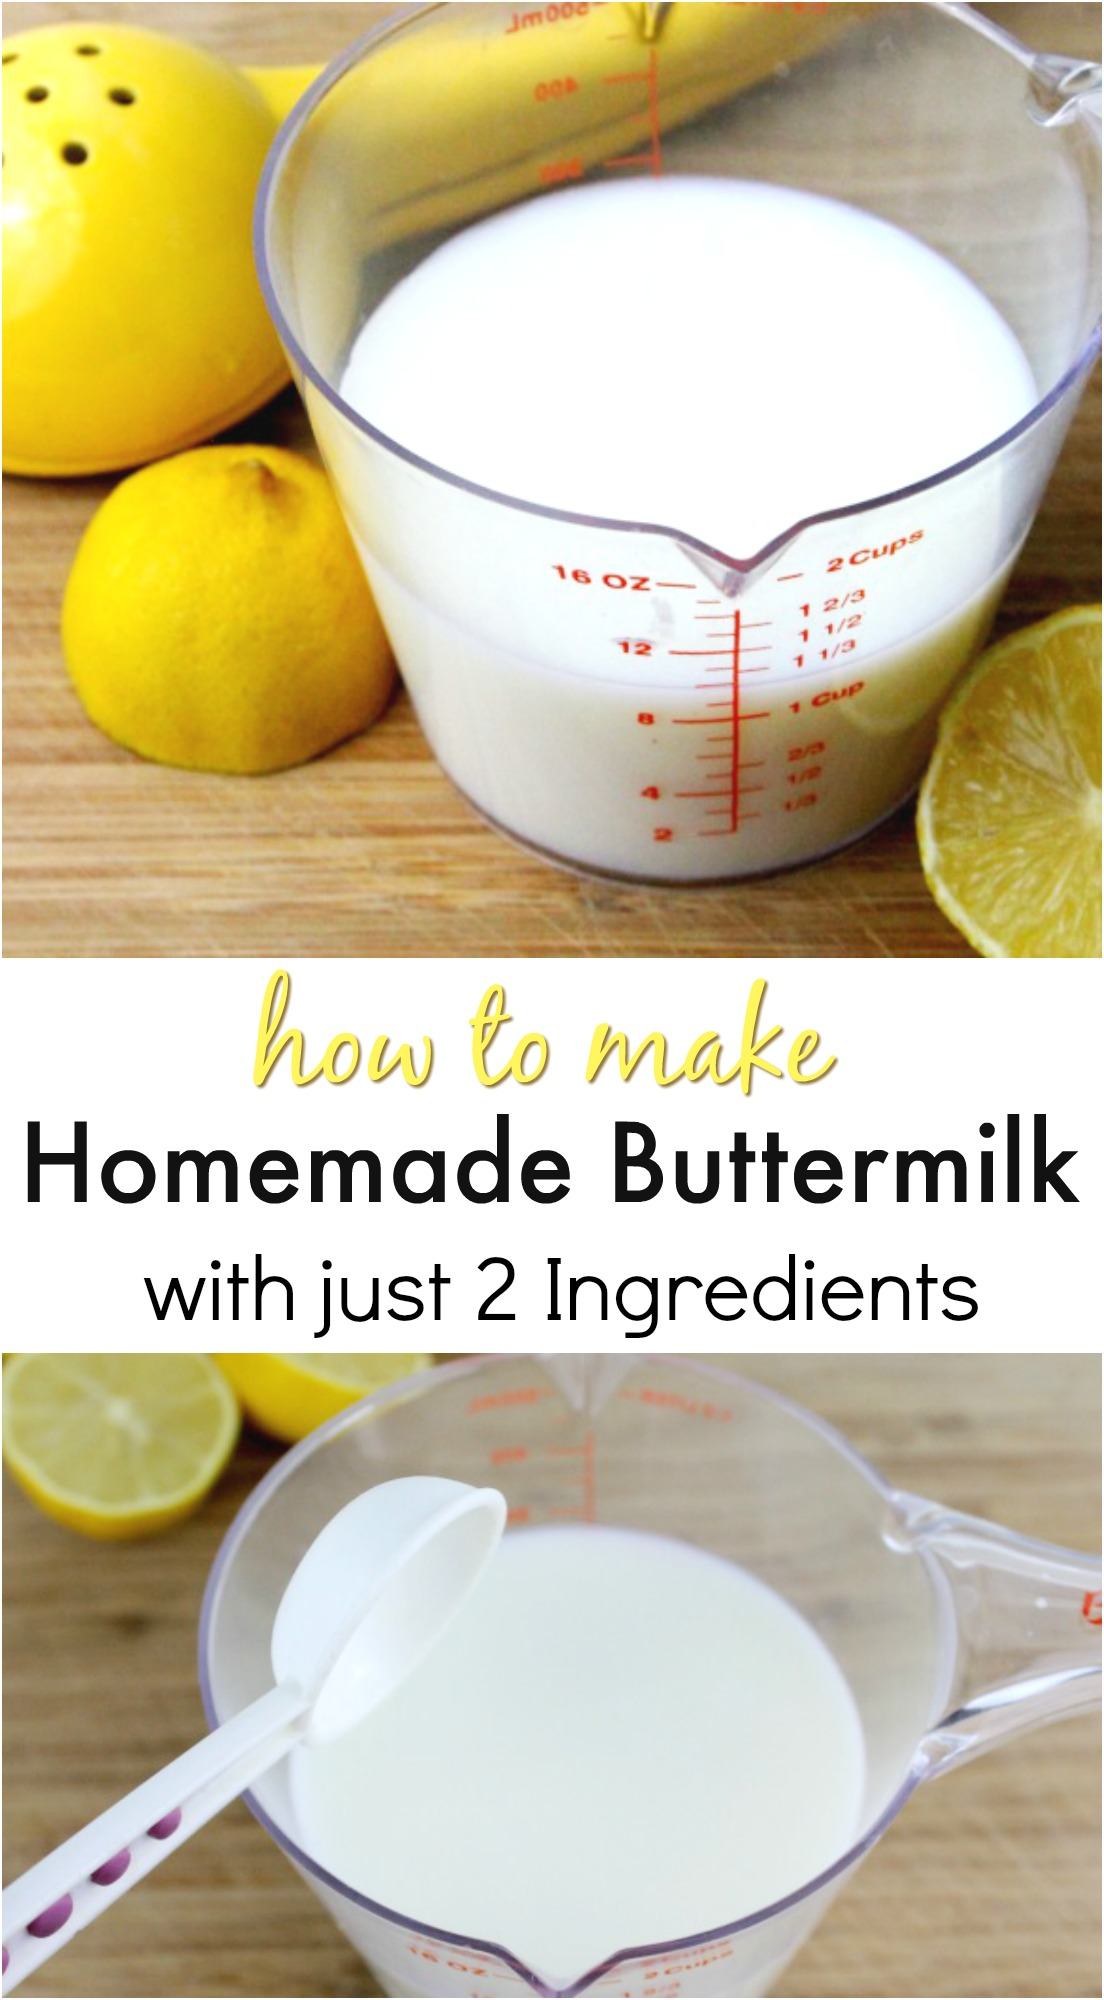 How to make Homemade Buttermilk with just 2 ingredients. This easy made from scratch buttermilk is super easy and quick to make. Buttermilk is great for baking and now you can make it at home.